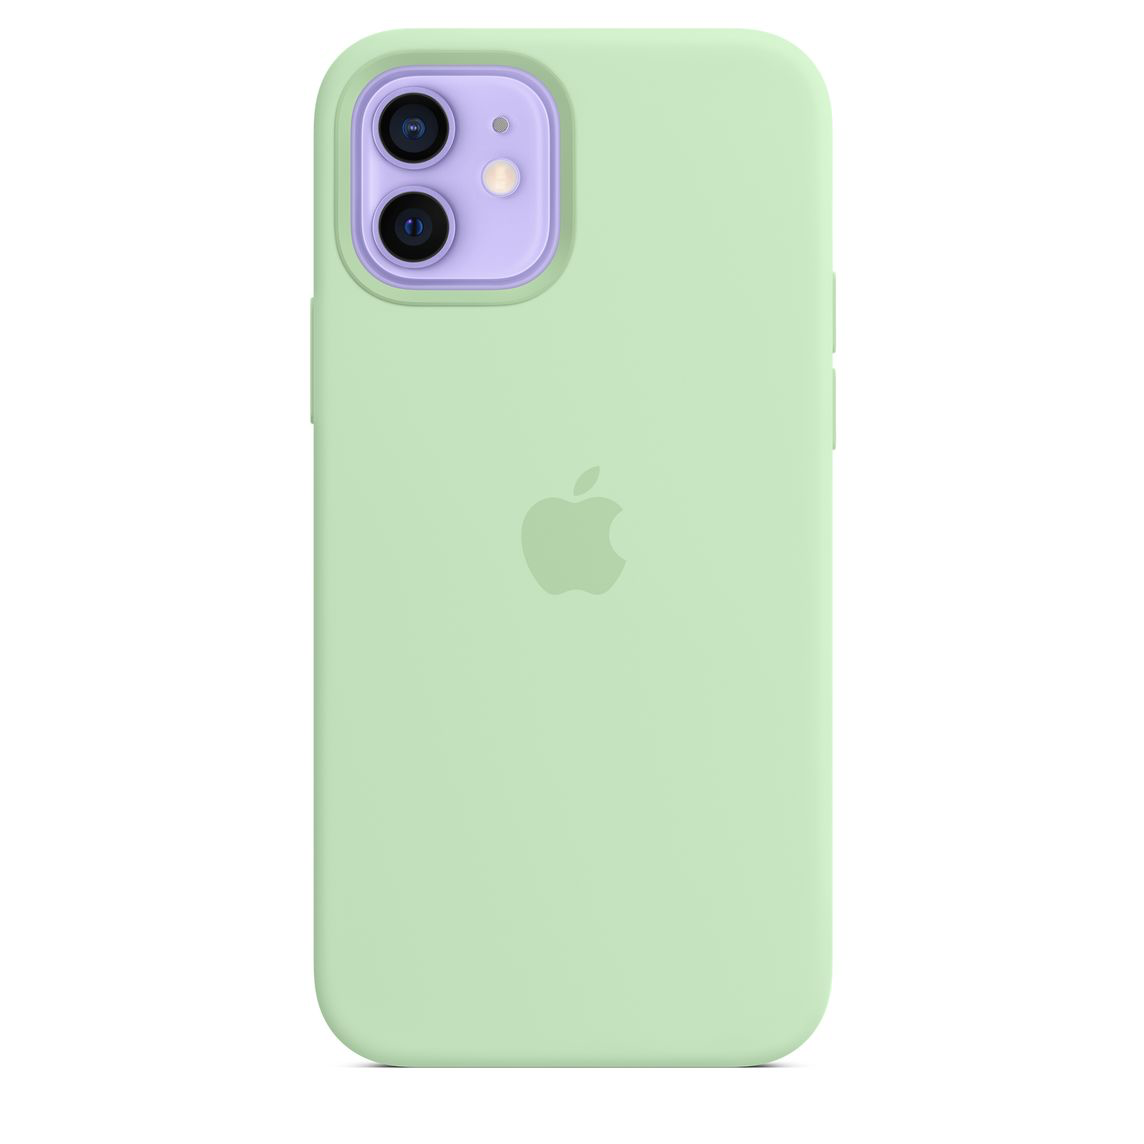 Apple iPhone 12 Pro Max Silicone Case with MagSafe Pistachio